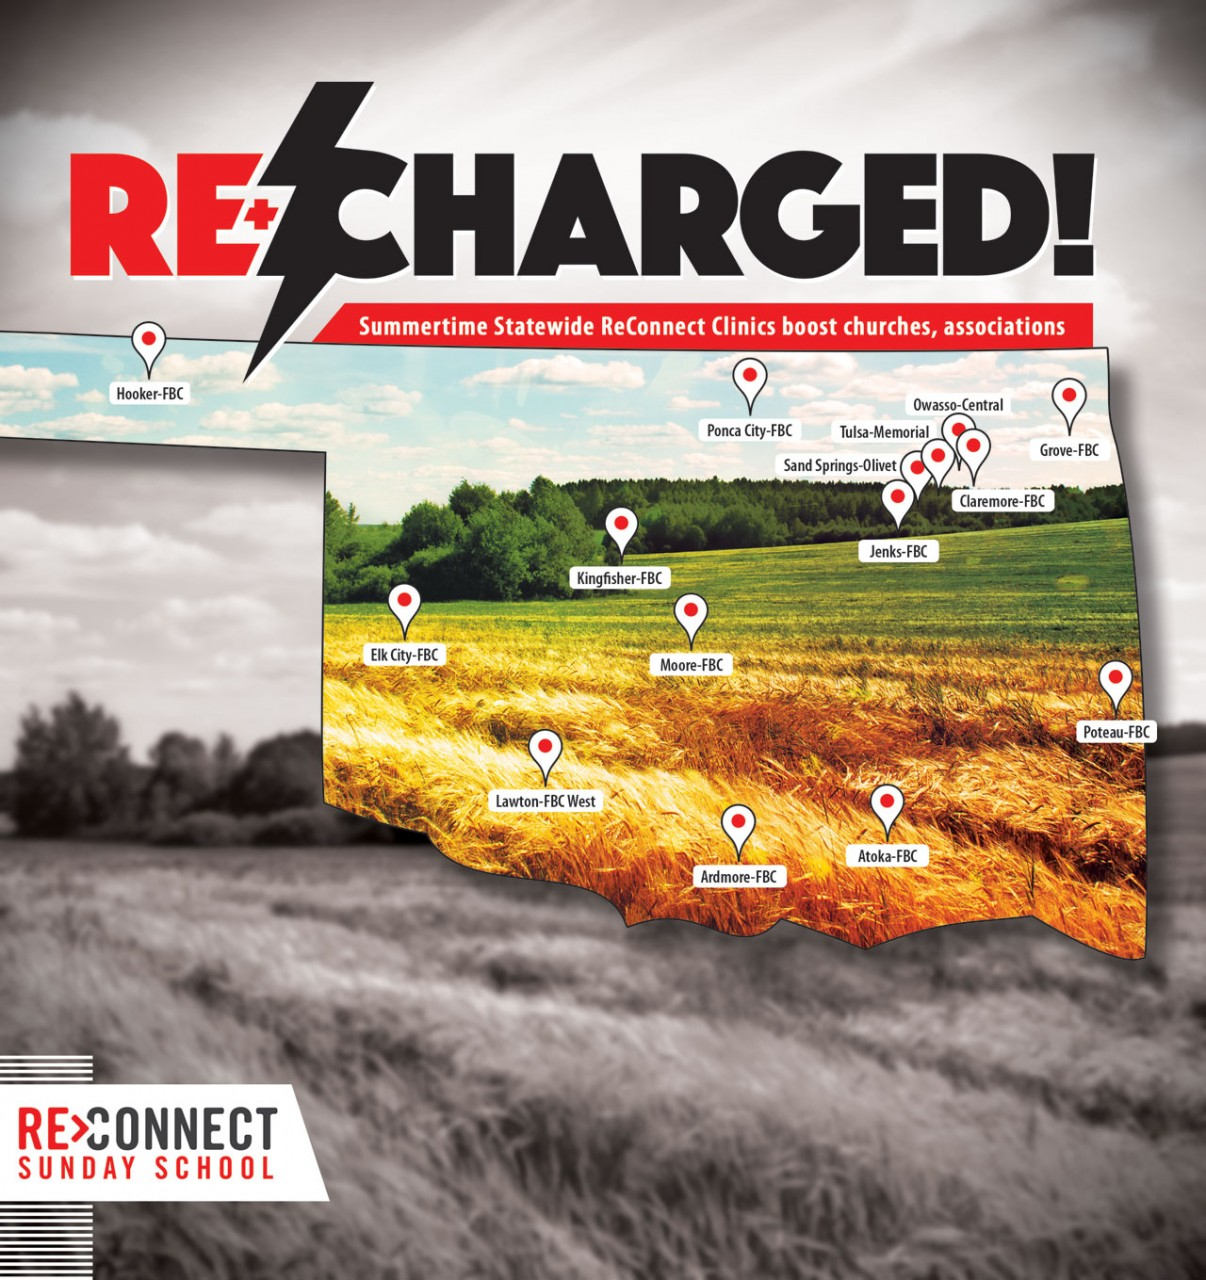 ReCharged: Summertime Statewide ReConnect Clinics boost churches, associations